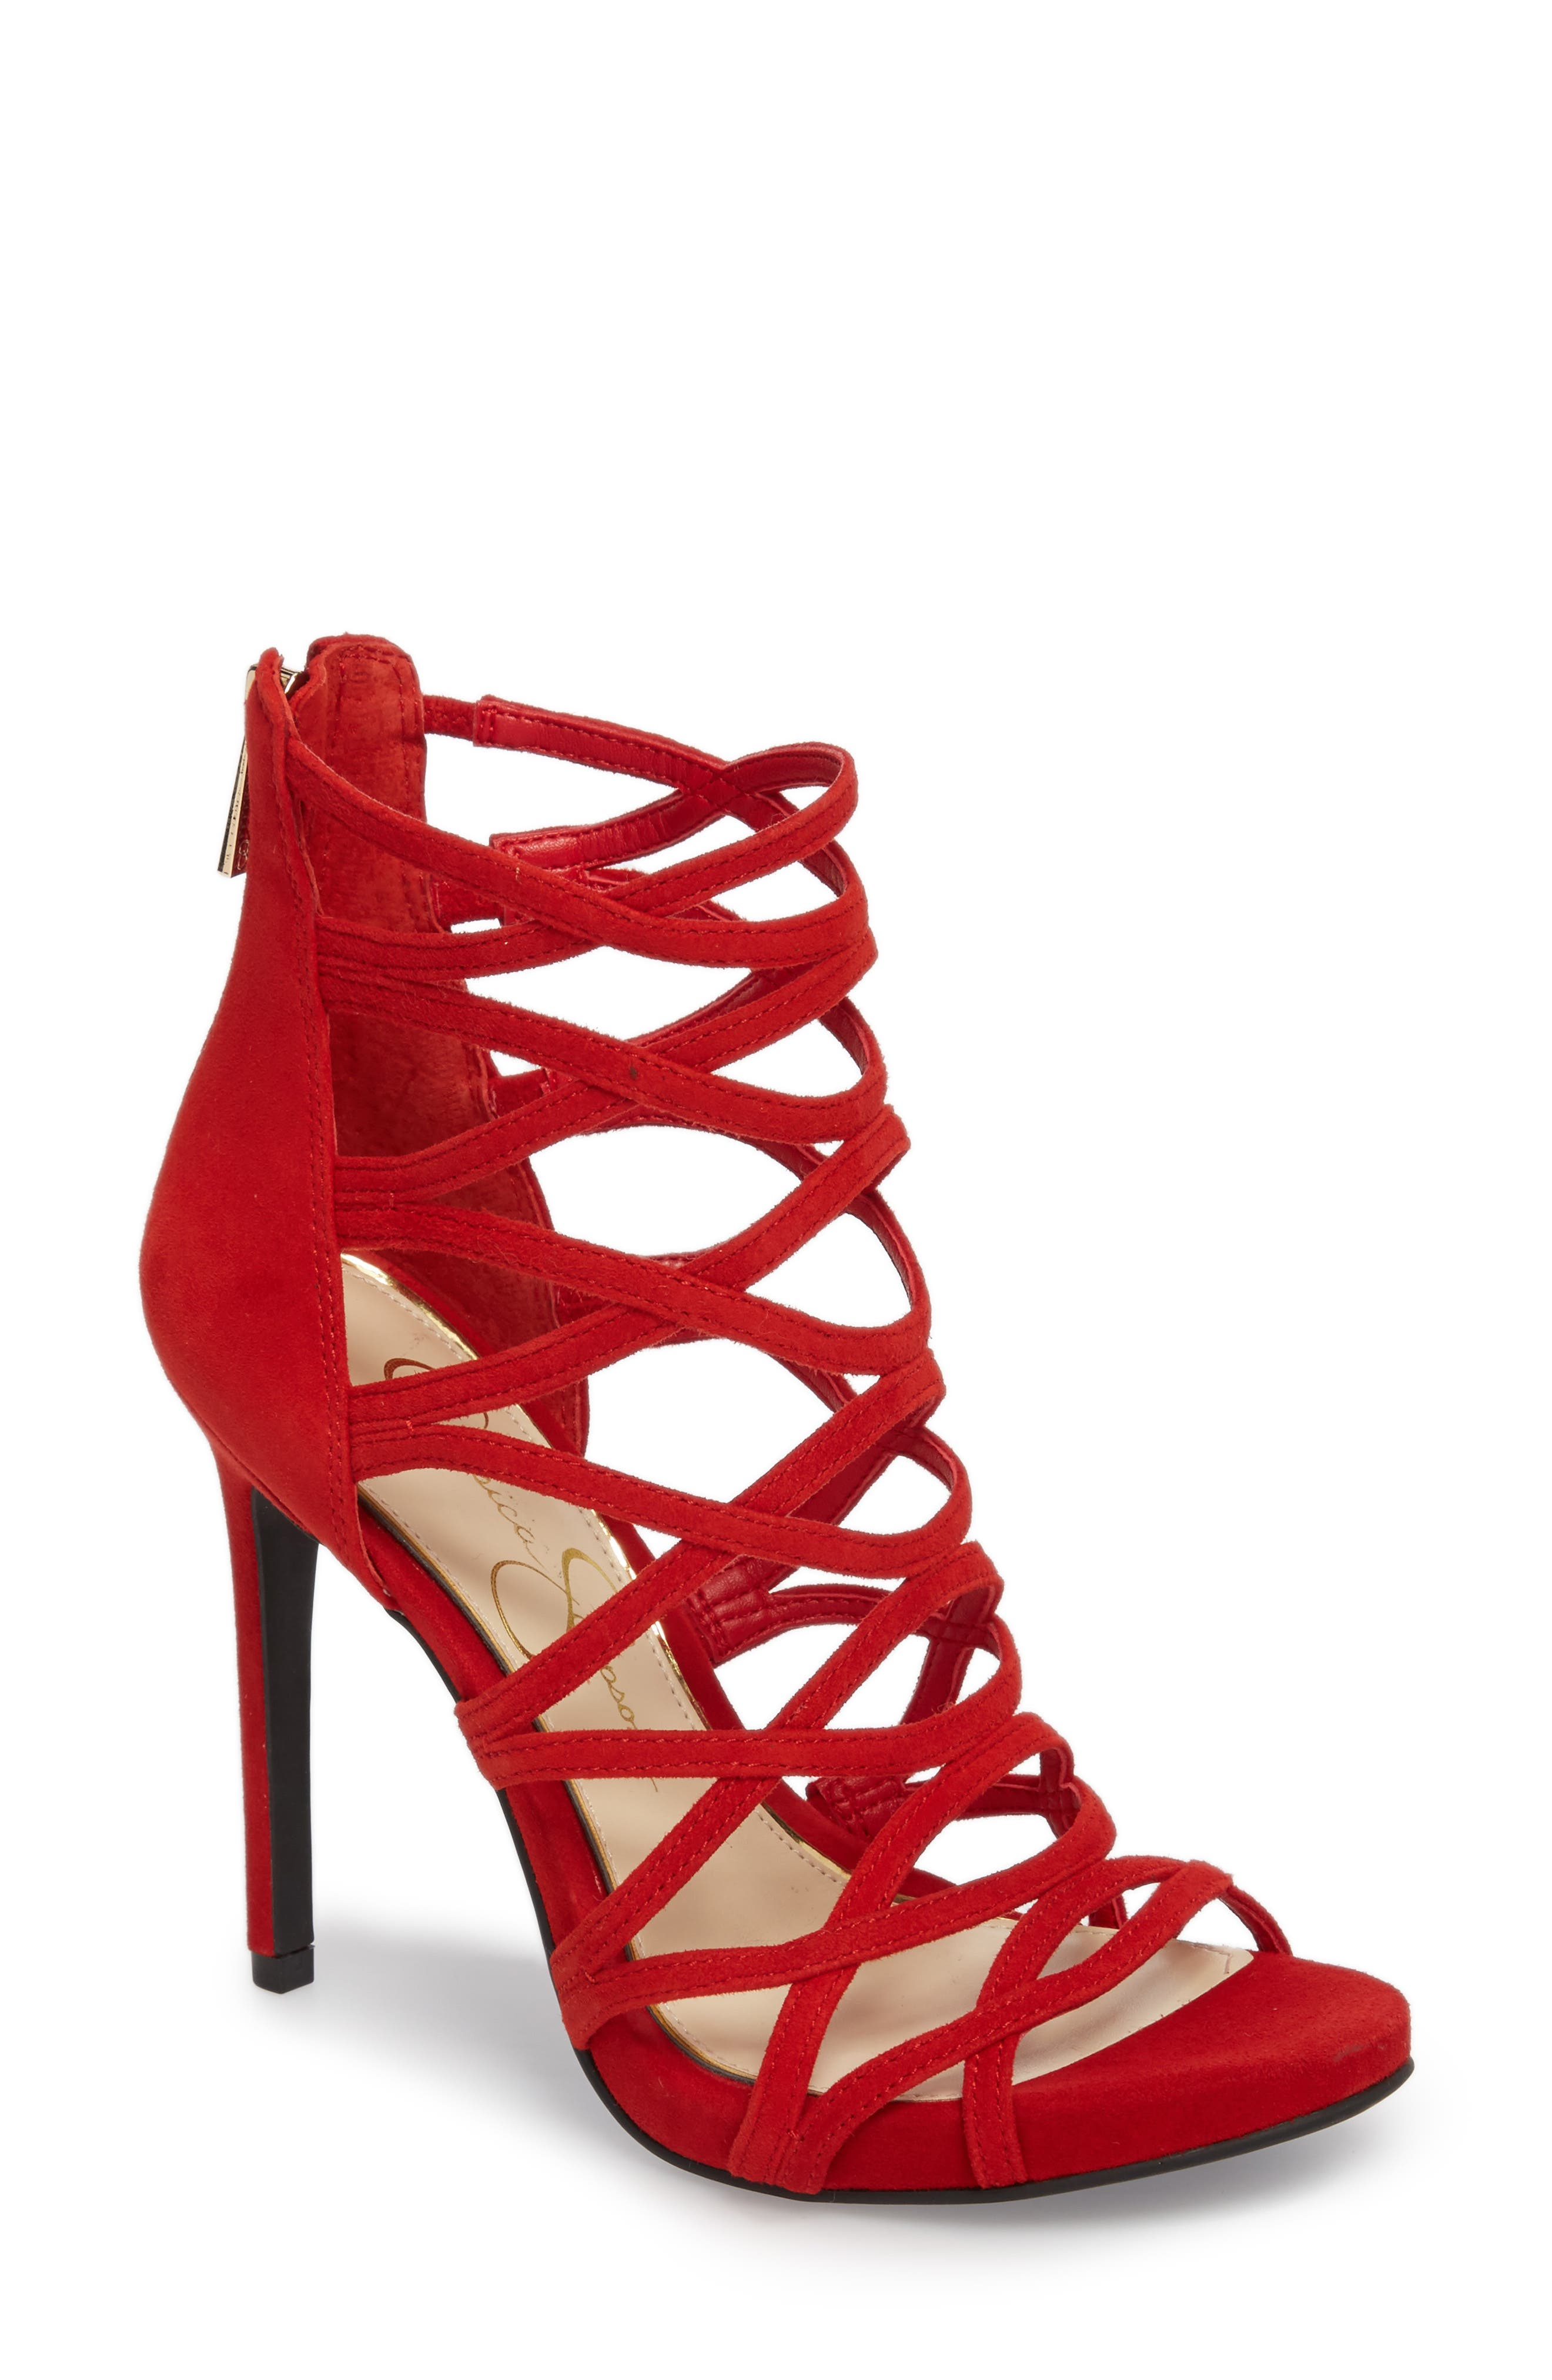 Razella Cage Sandal,                             Main thumbnail 1, color,                             Red Muse Suede